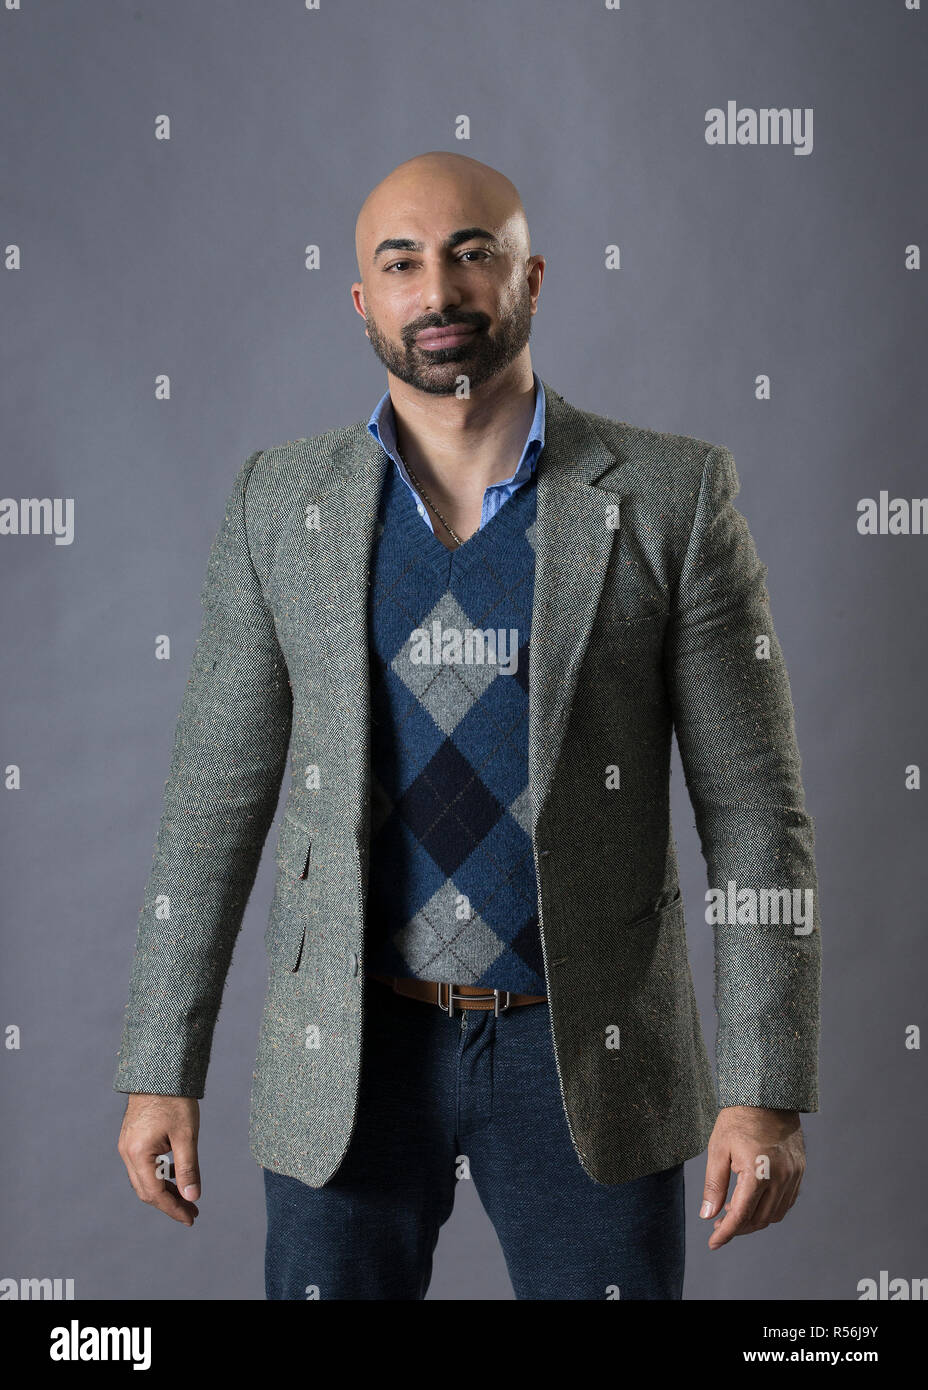 Hassan Sheheryar Yasin Simply Known As H S Y Is A Pakistani Fashion Designer He Was Salutatorian Of The Pakistan School Of Fashion Design Stock Photo Alamy